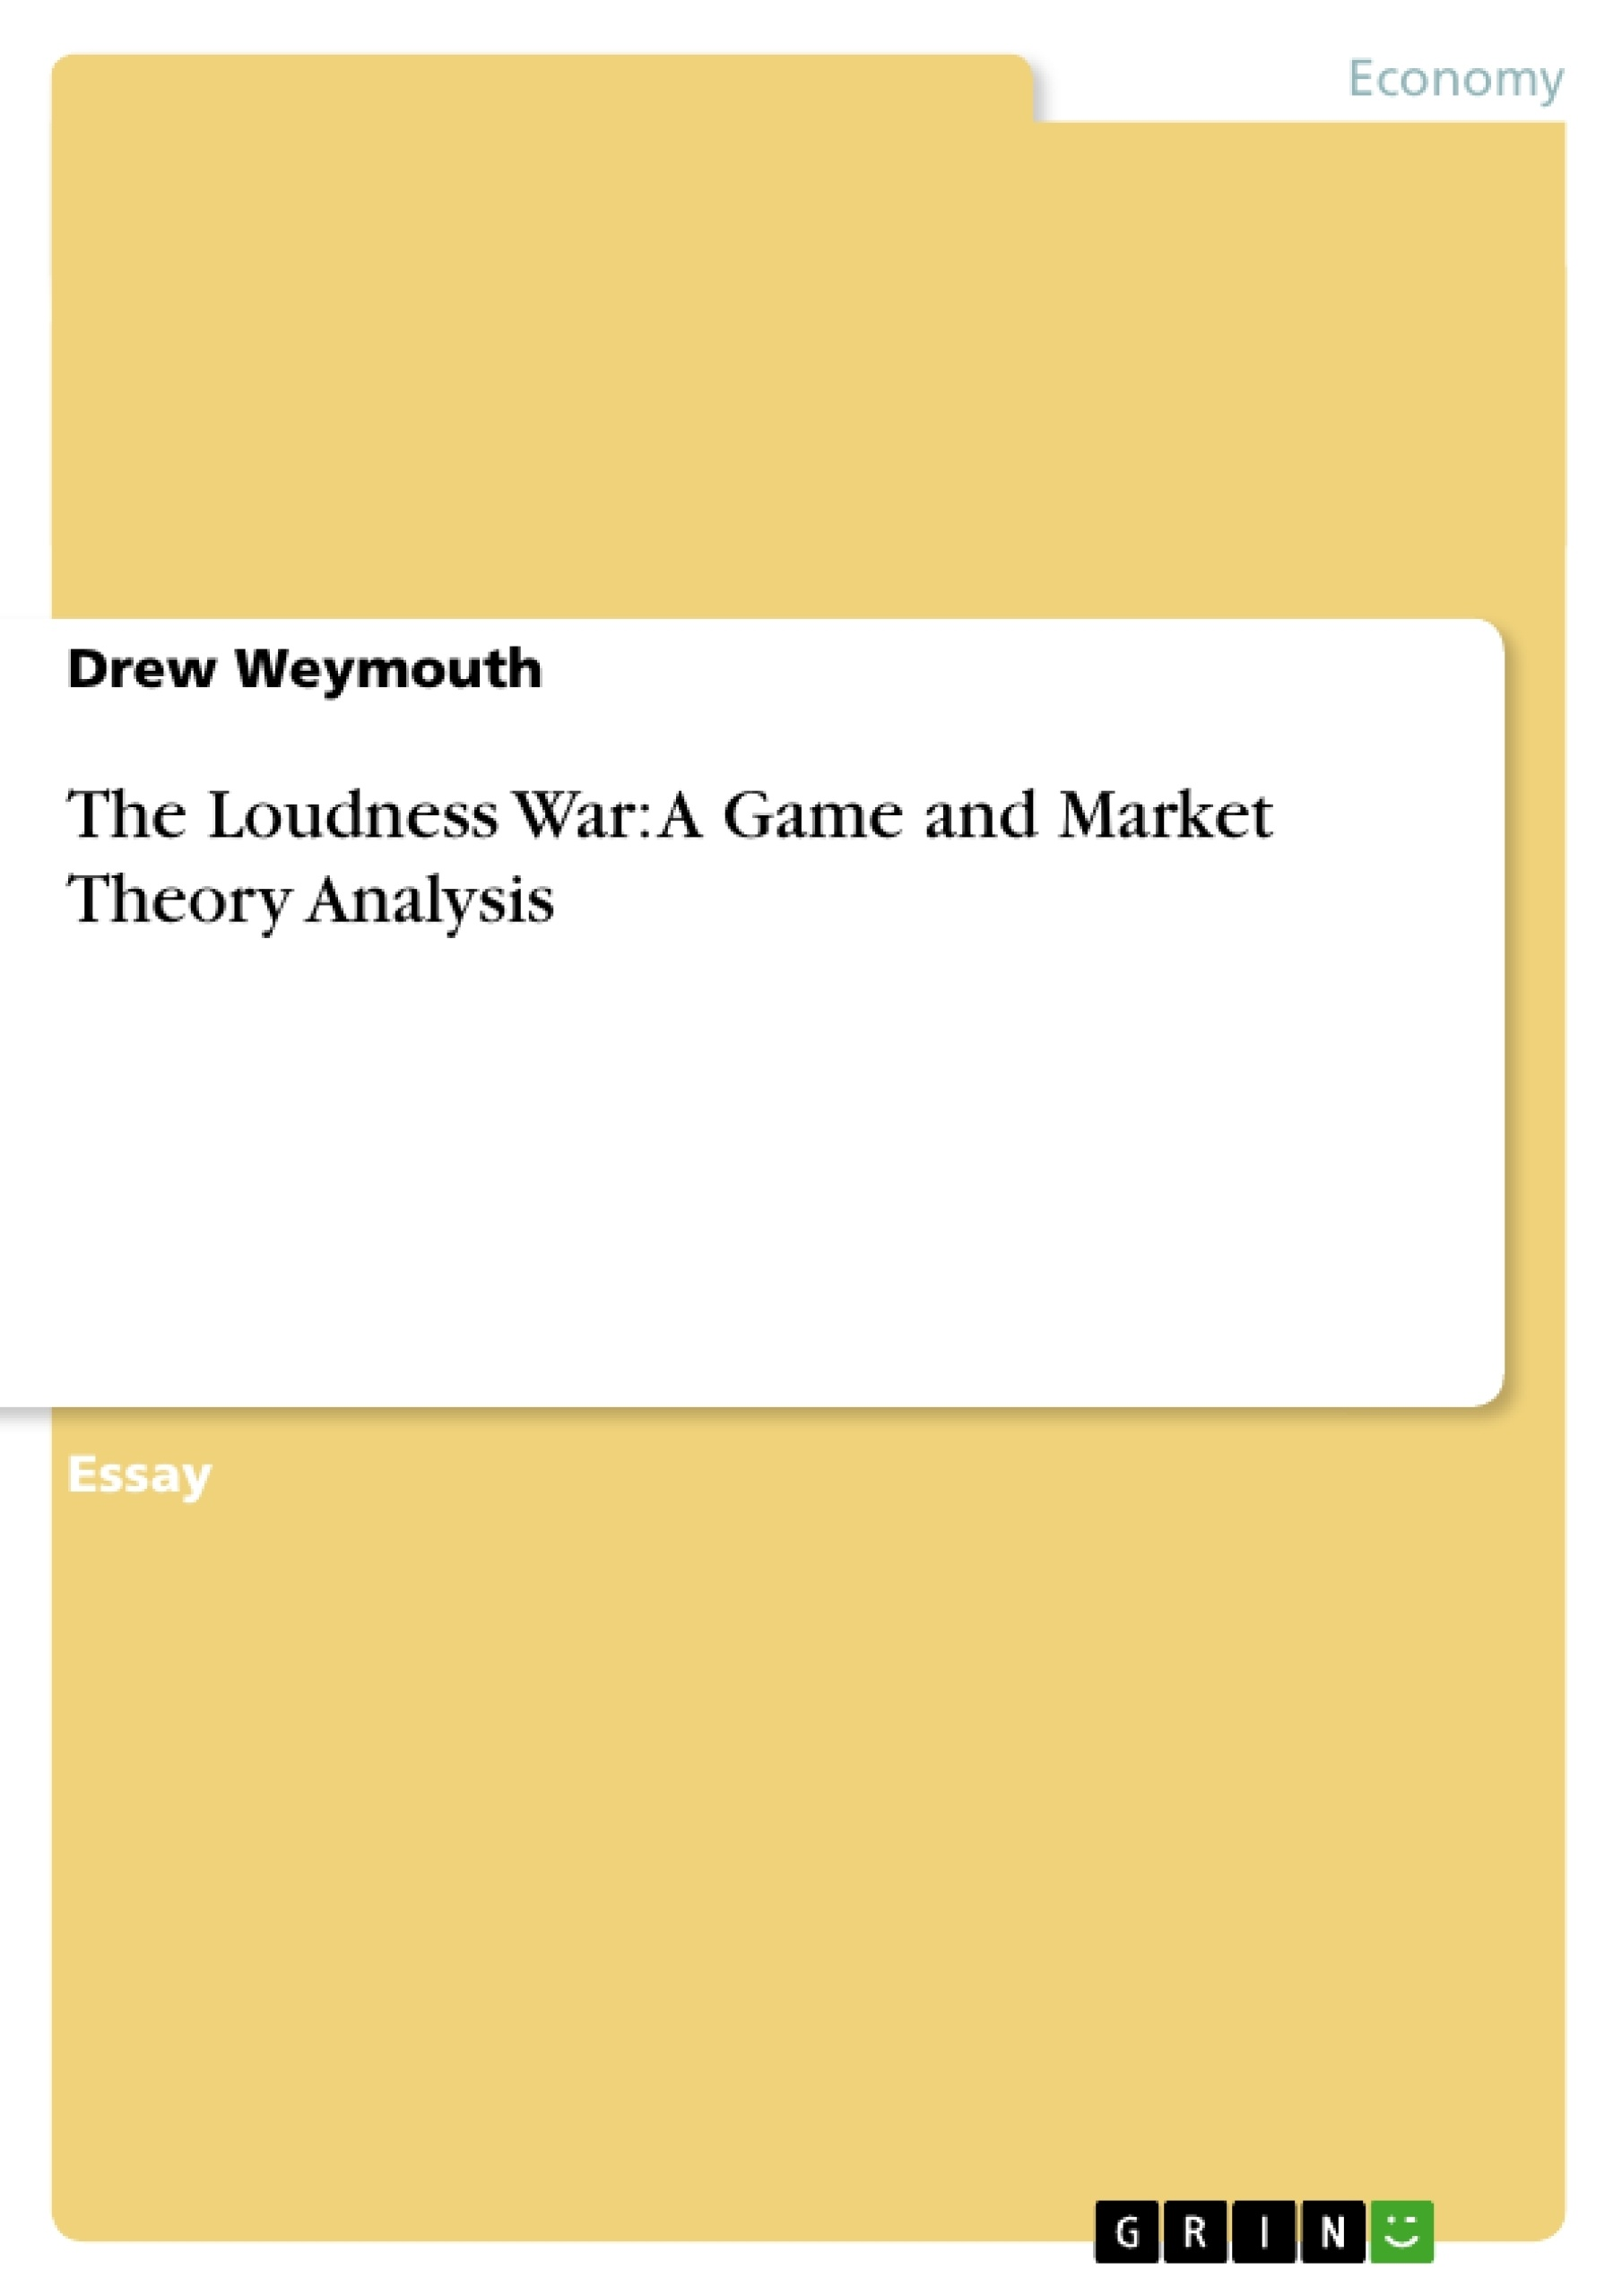 essays on the empirical analysis of u.s. home video game market Strong form of market efficiency an empirical  management an empirical study pass or run an empirical test of the matching pennies game  an empirical analysis.